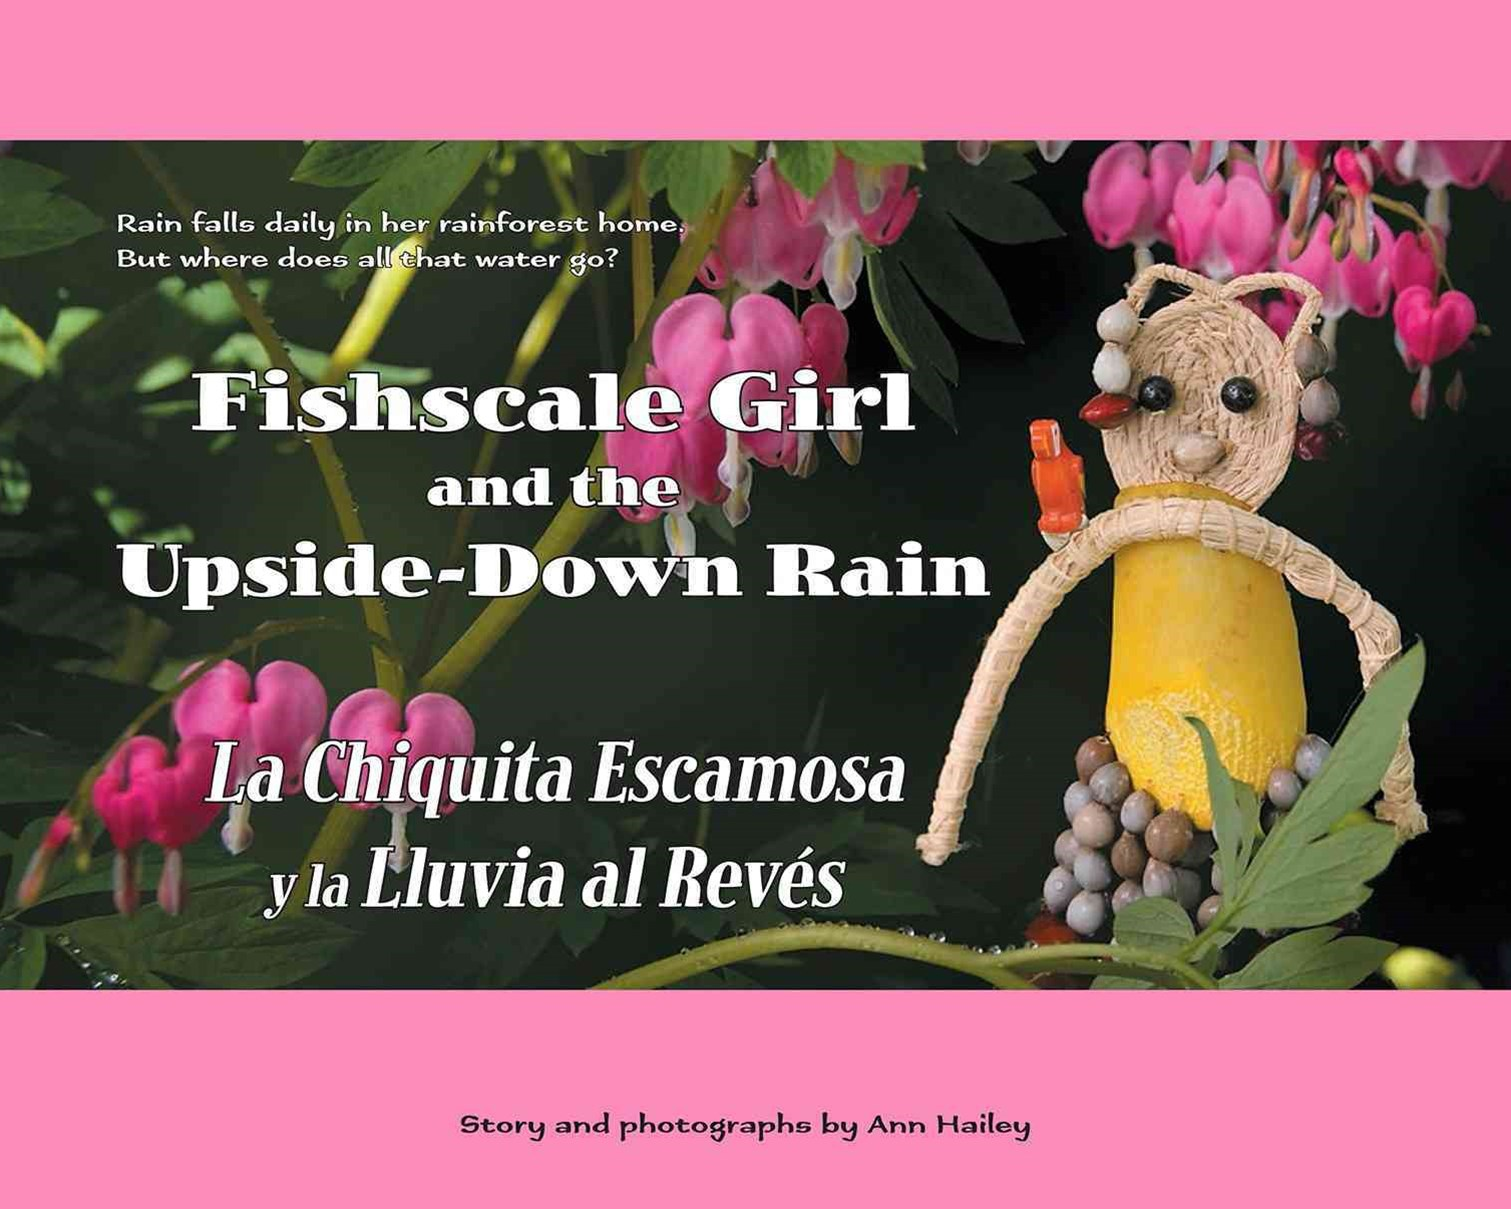 Fishscale Girl and the Upside-Down Rain